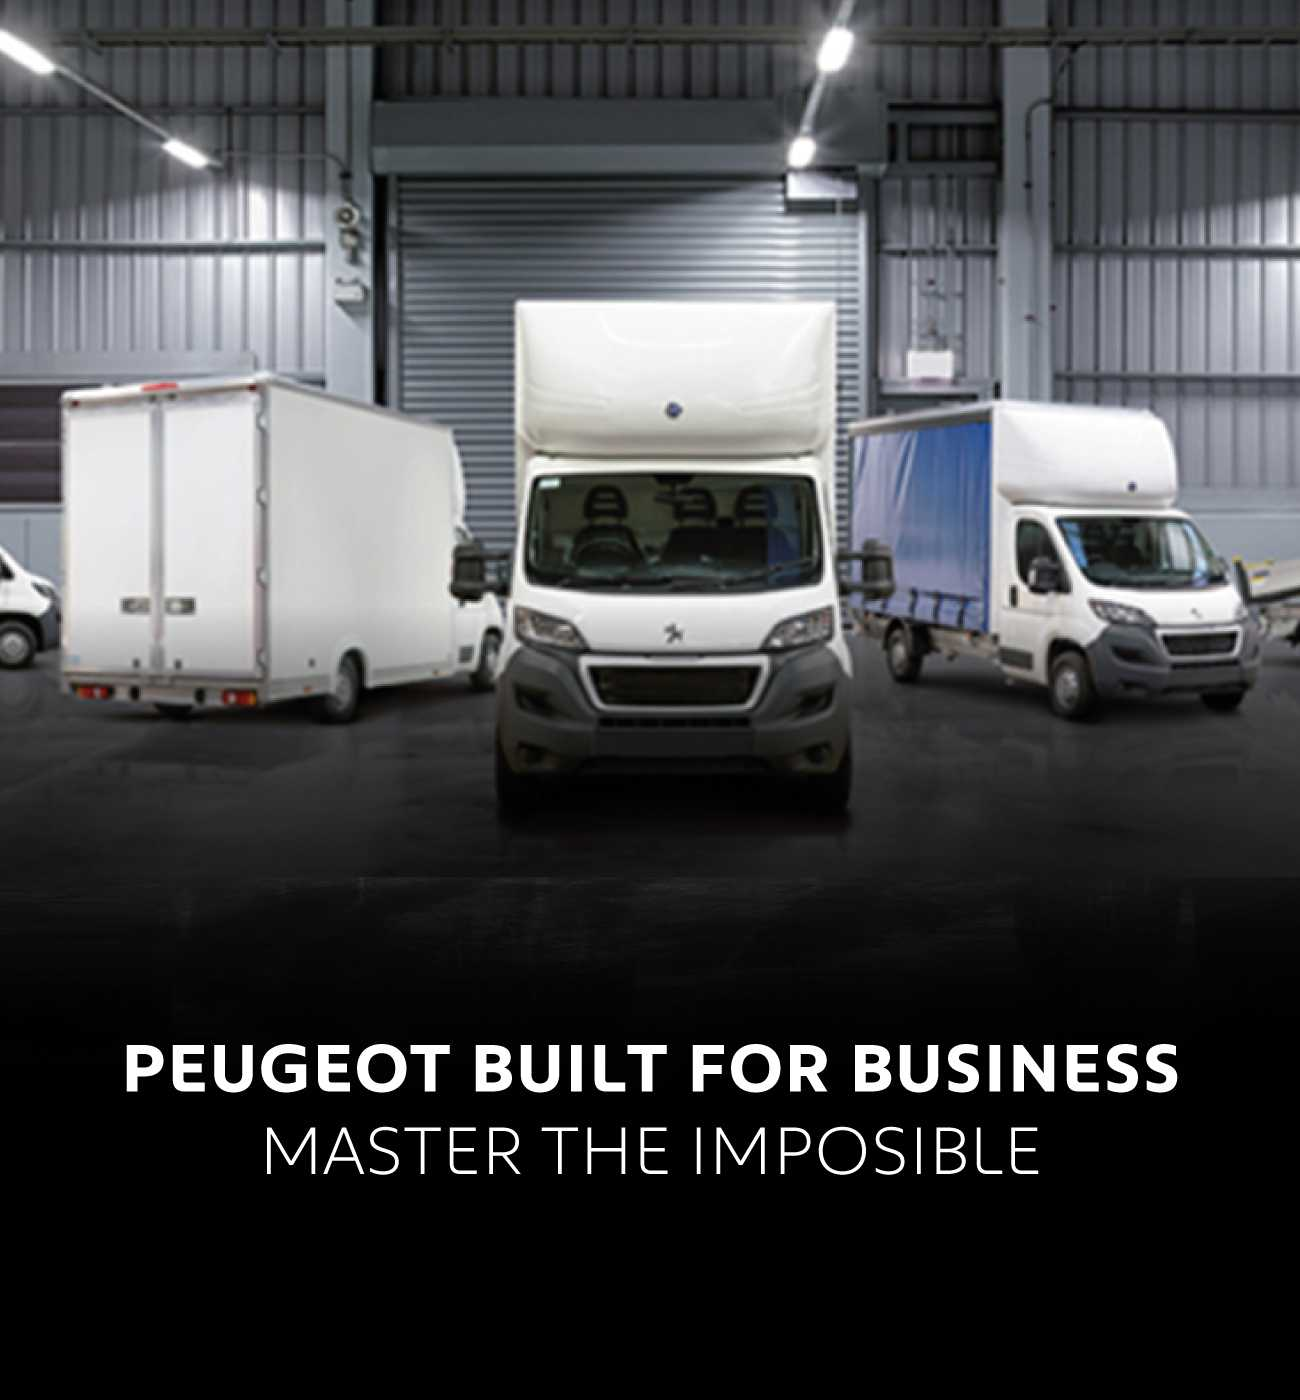 Peugeot buil for Business BB